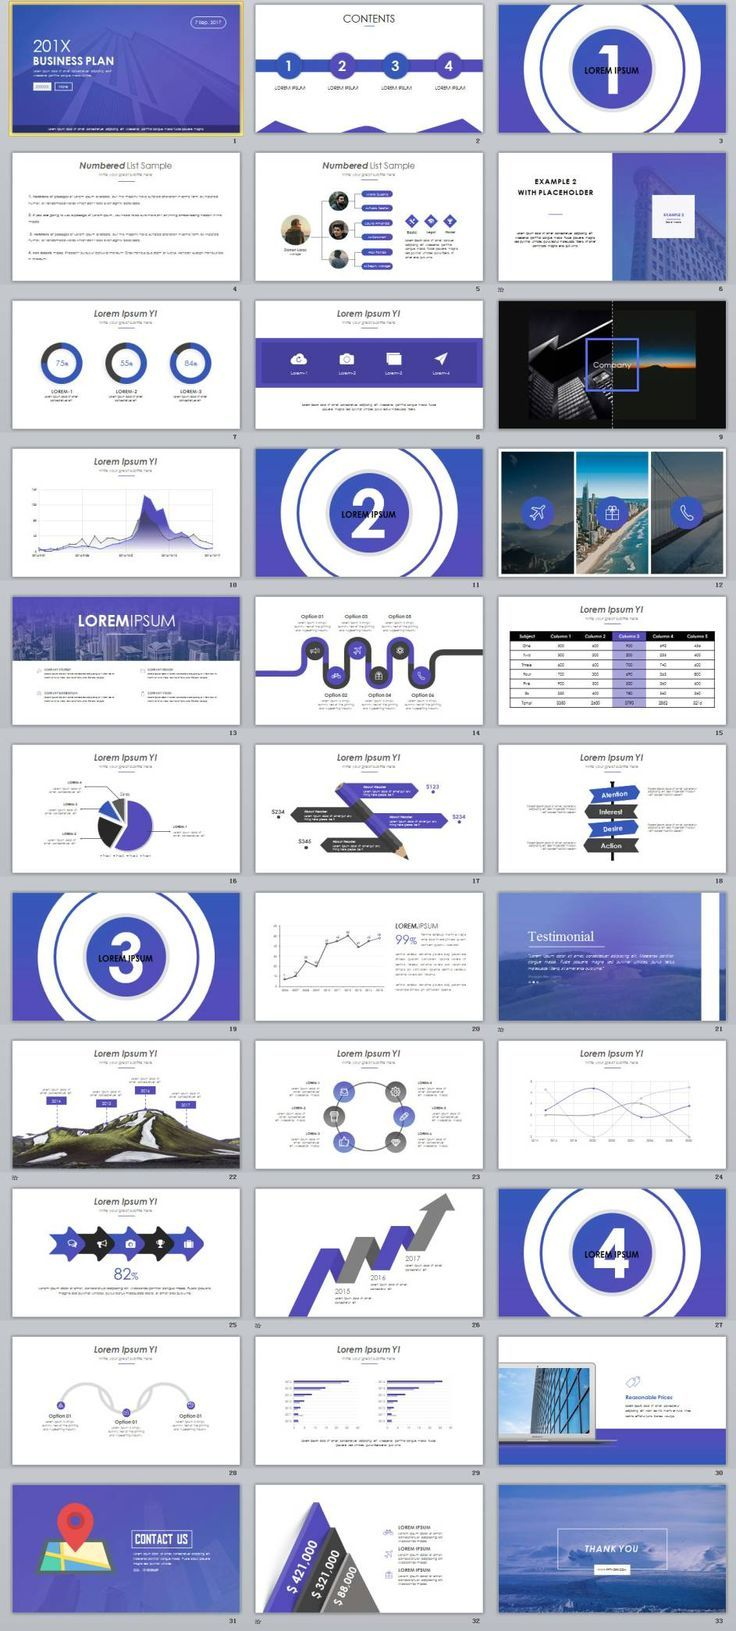 33 business plan chart powerpoint template presentation templates 33 business plan chart powerpoint template presentation templates pinterest design templates and business planning wajeb Images